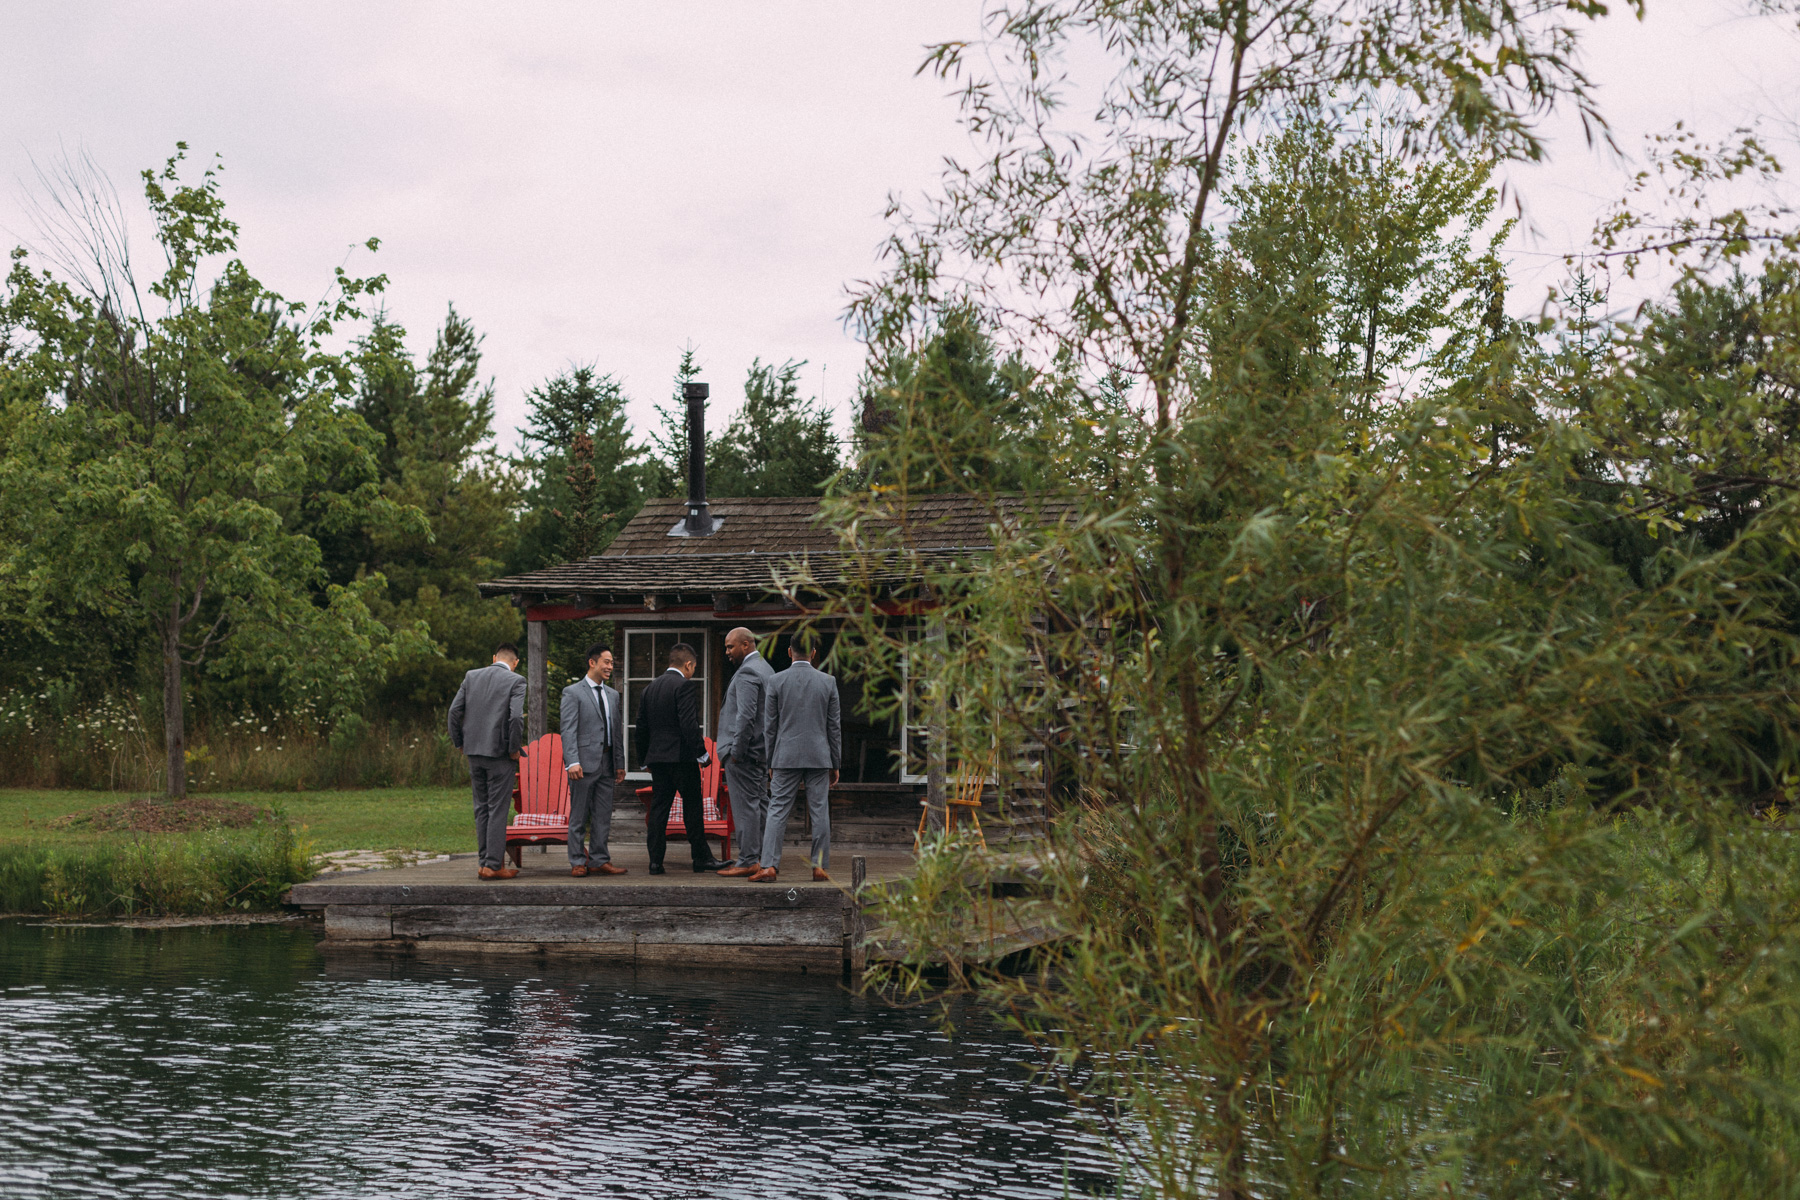 Belcroft-Estates-&-Event-Centre-wedding-photography-by-Sam-Wong-of-Artanis-Collective_011.jpg